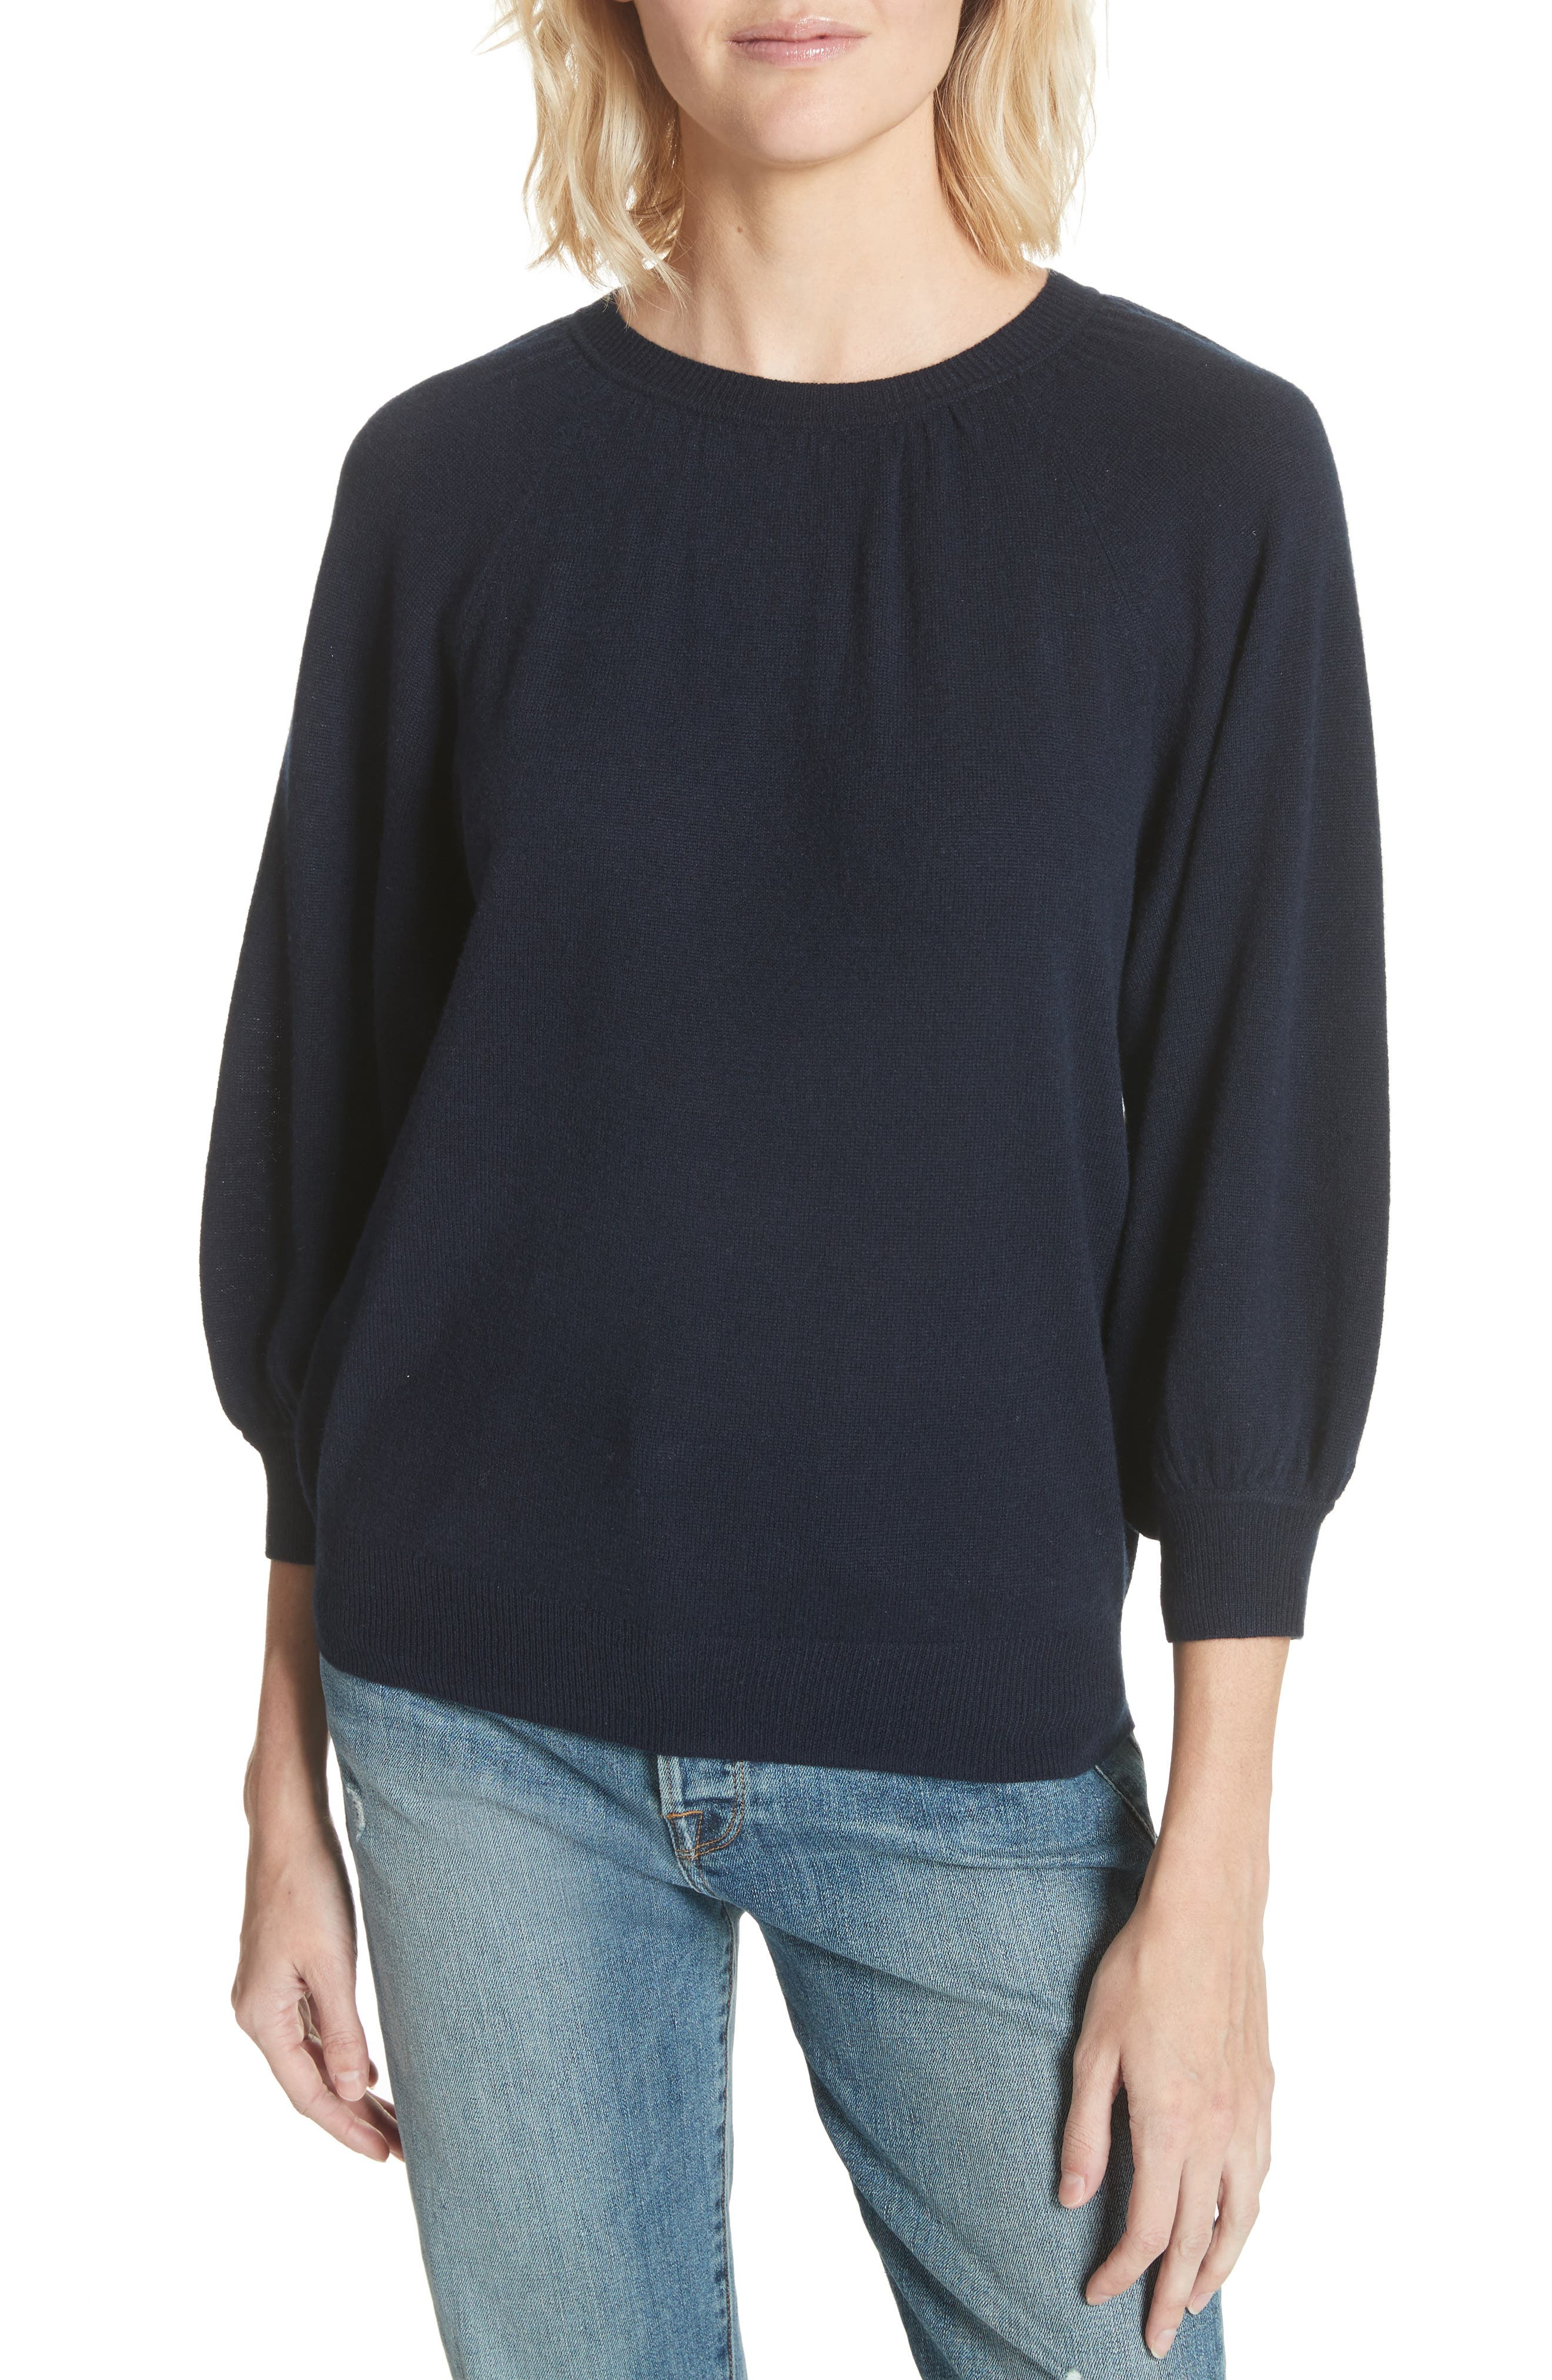 Joie Calendae Cashmere Sweater